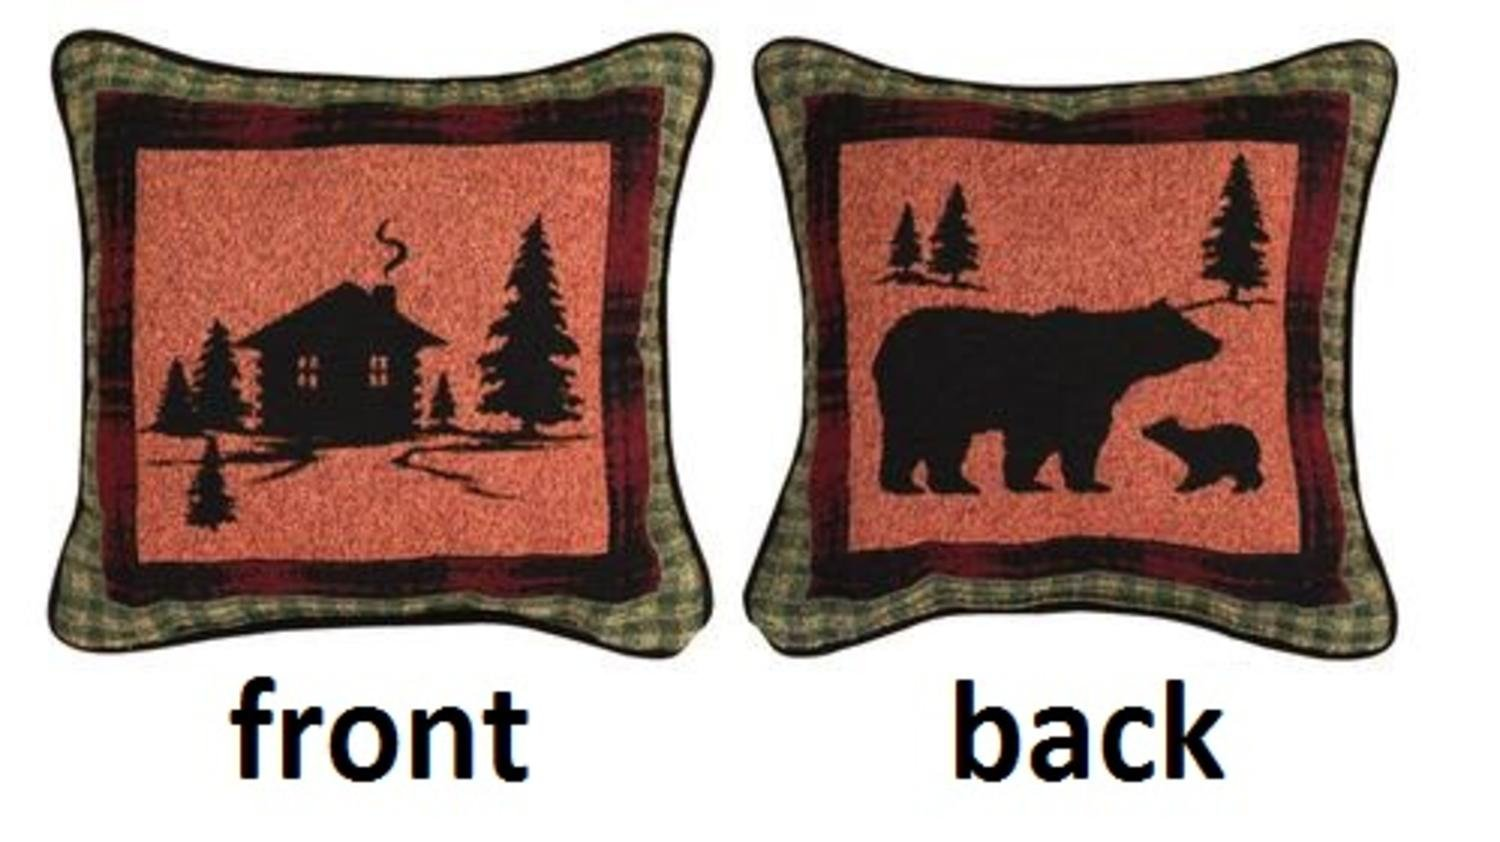 Manual Weavers 12.5'' Rustic Lodge Cabin in the Woods Square Throw Pillow